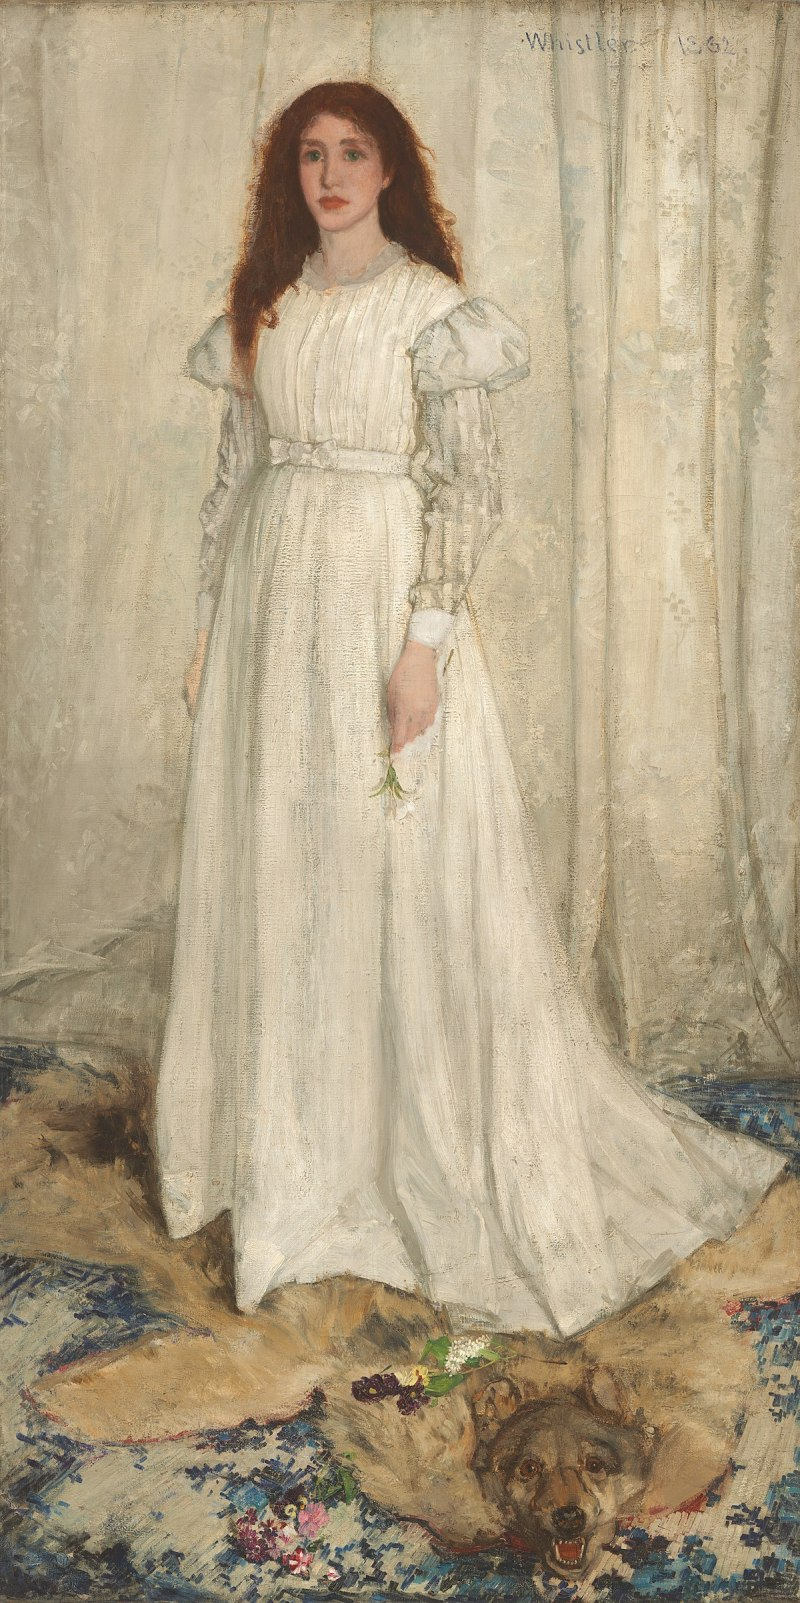 1200px-Whistler_James_Symphony_in_White_no_1_(The_White_Girl)_1862